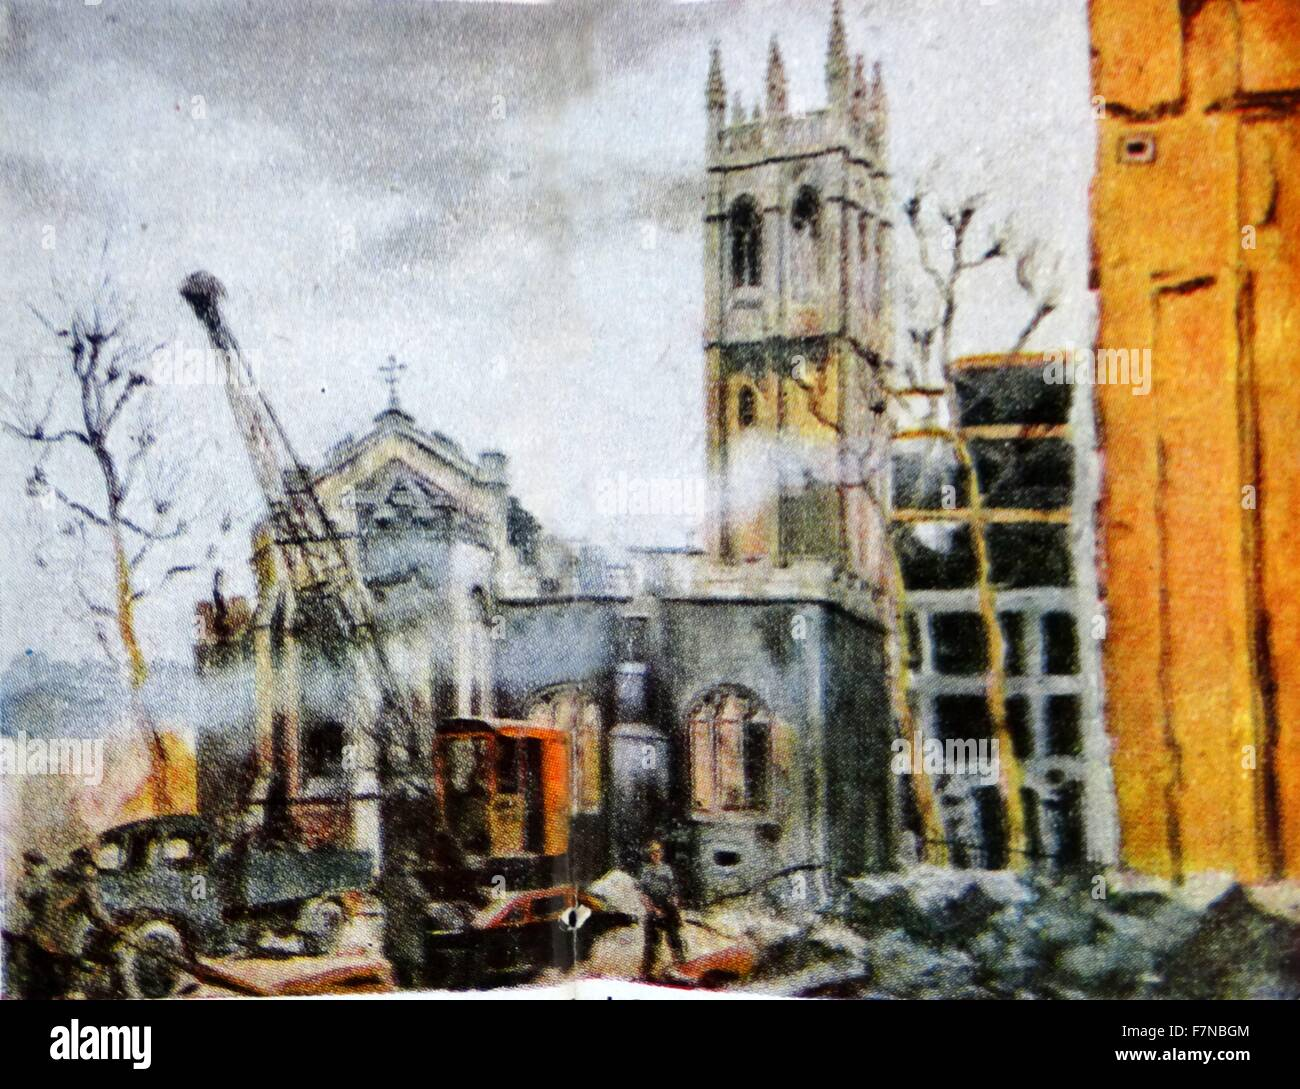 Painting of the destruction of  St Alban's by Kingsley Sutton (1907-1976) wartime artist. Dated 1942 - Stock Image